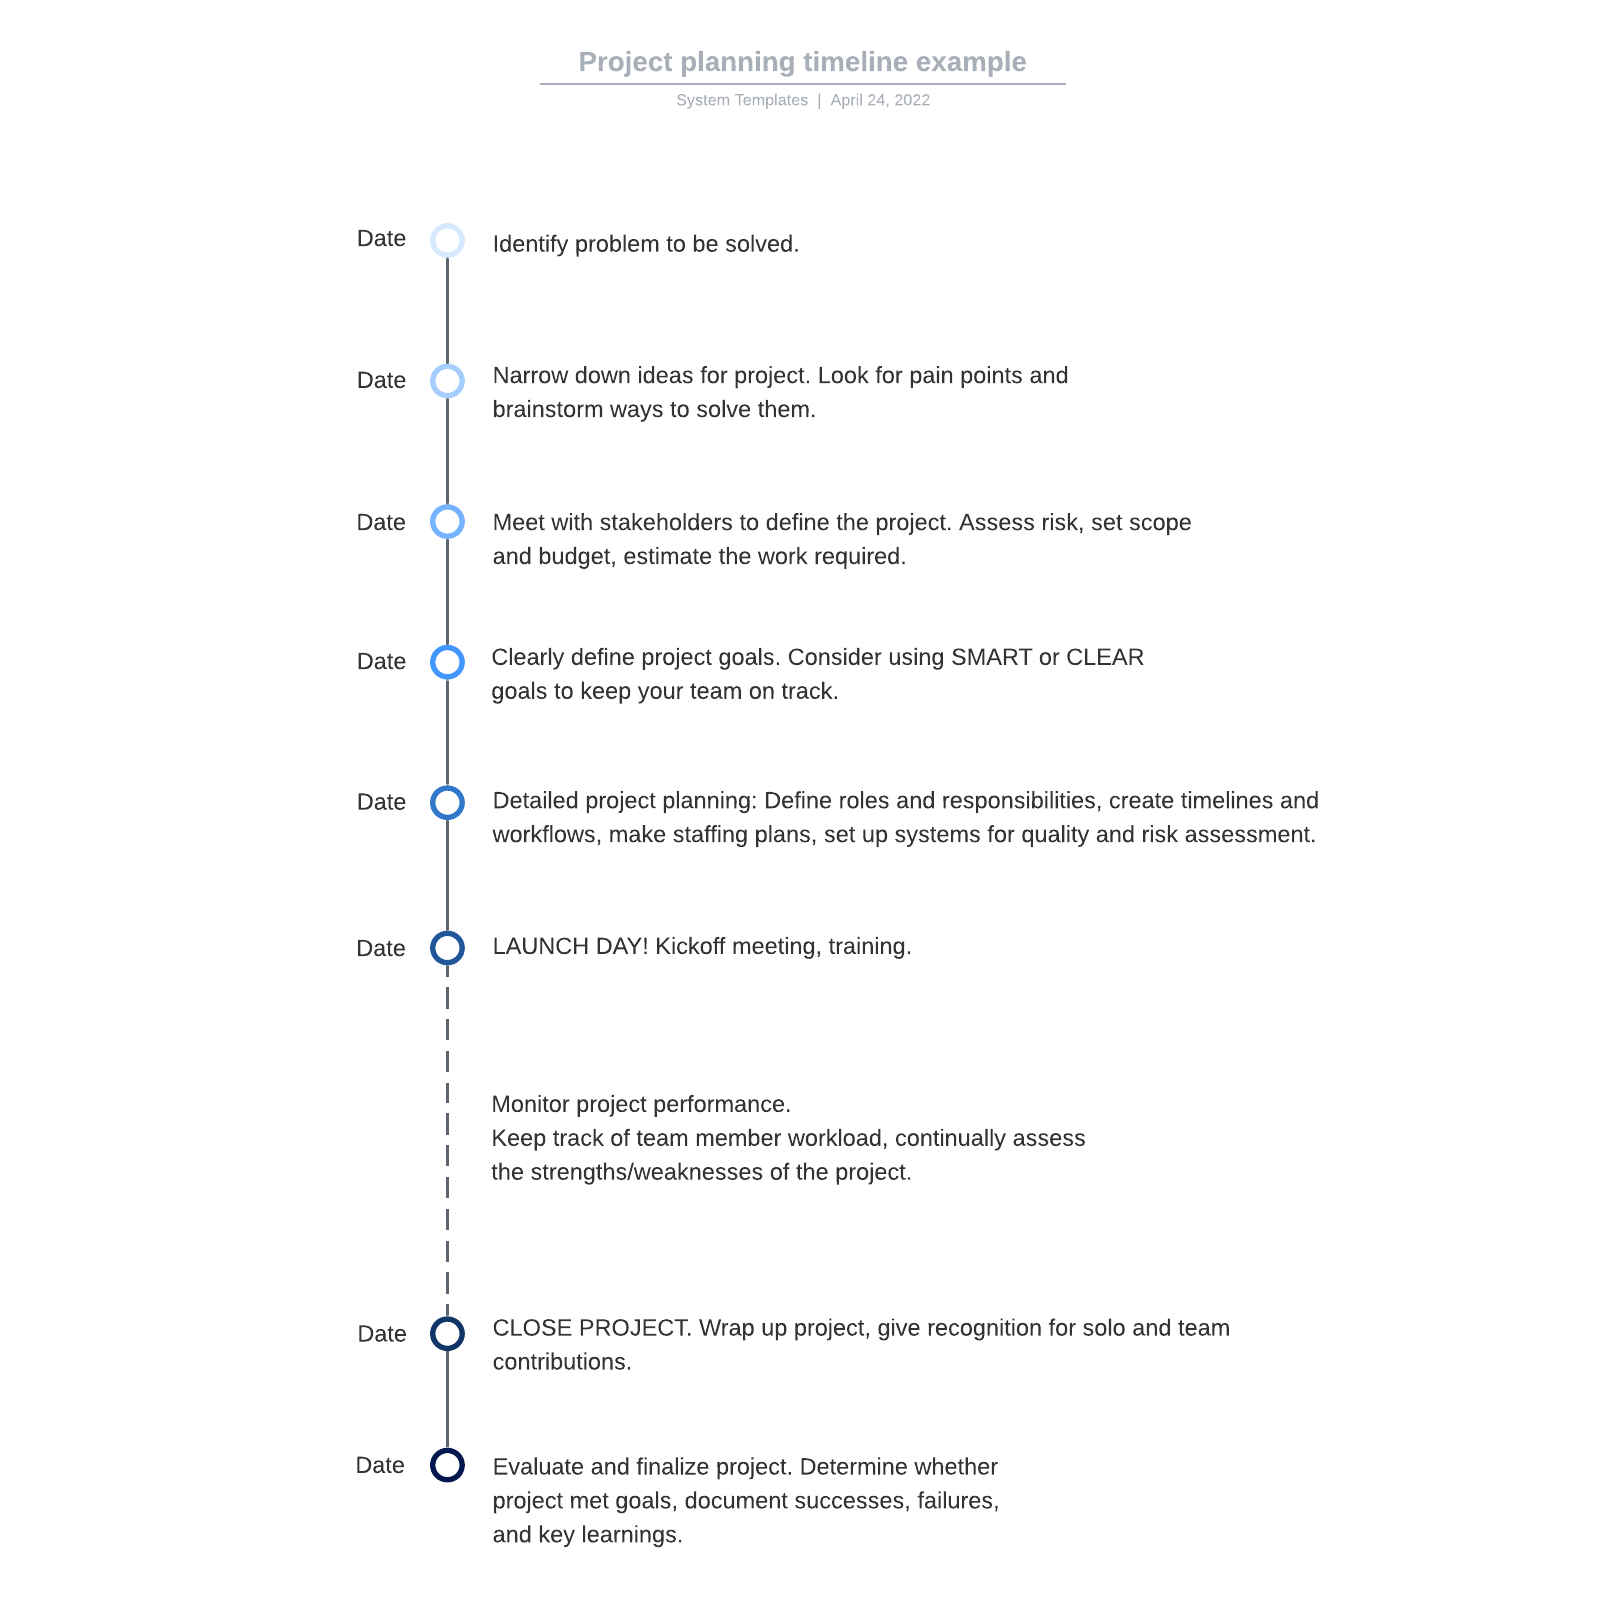 Project planning timeline example